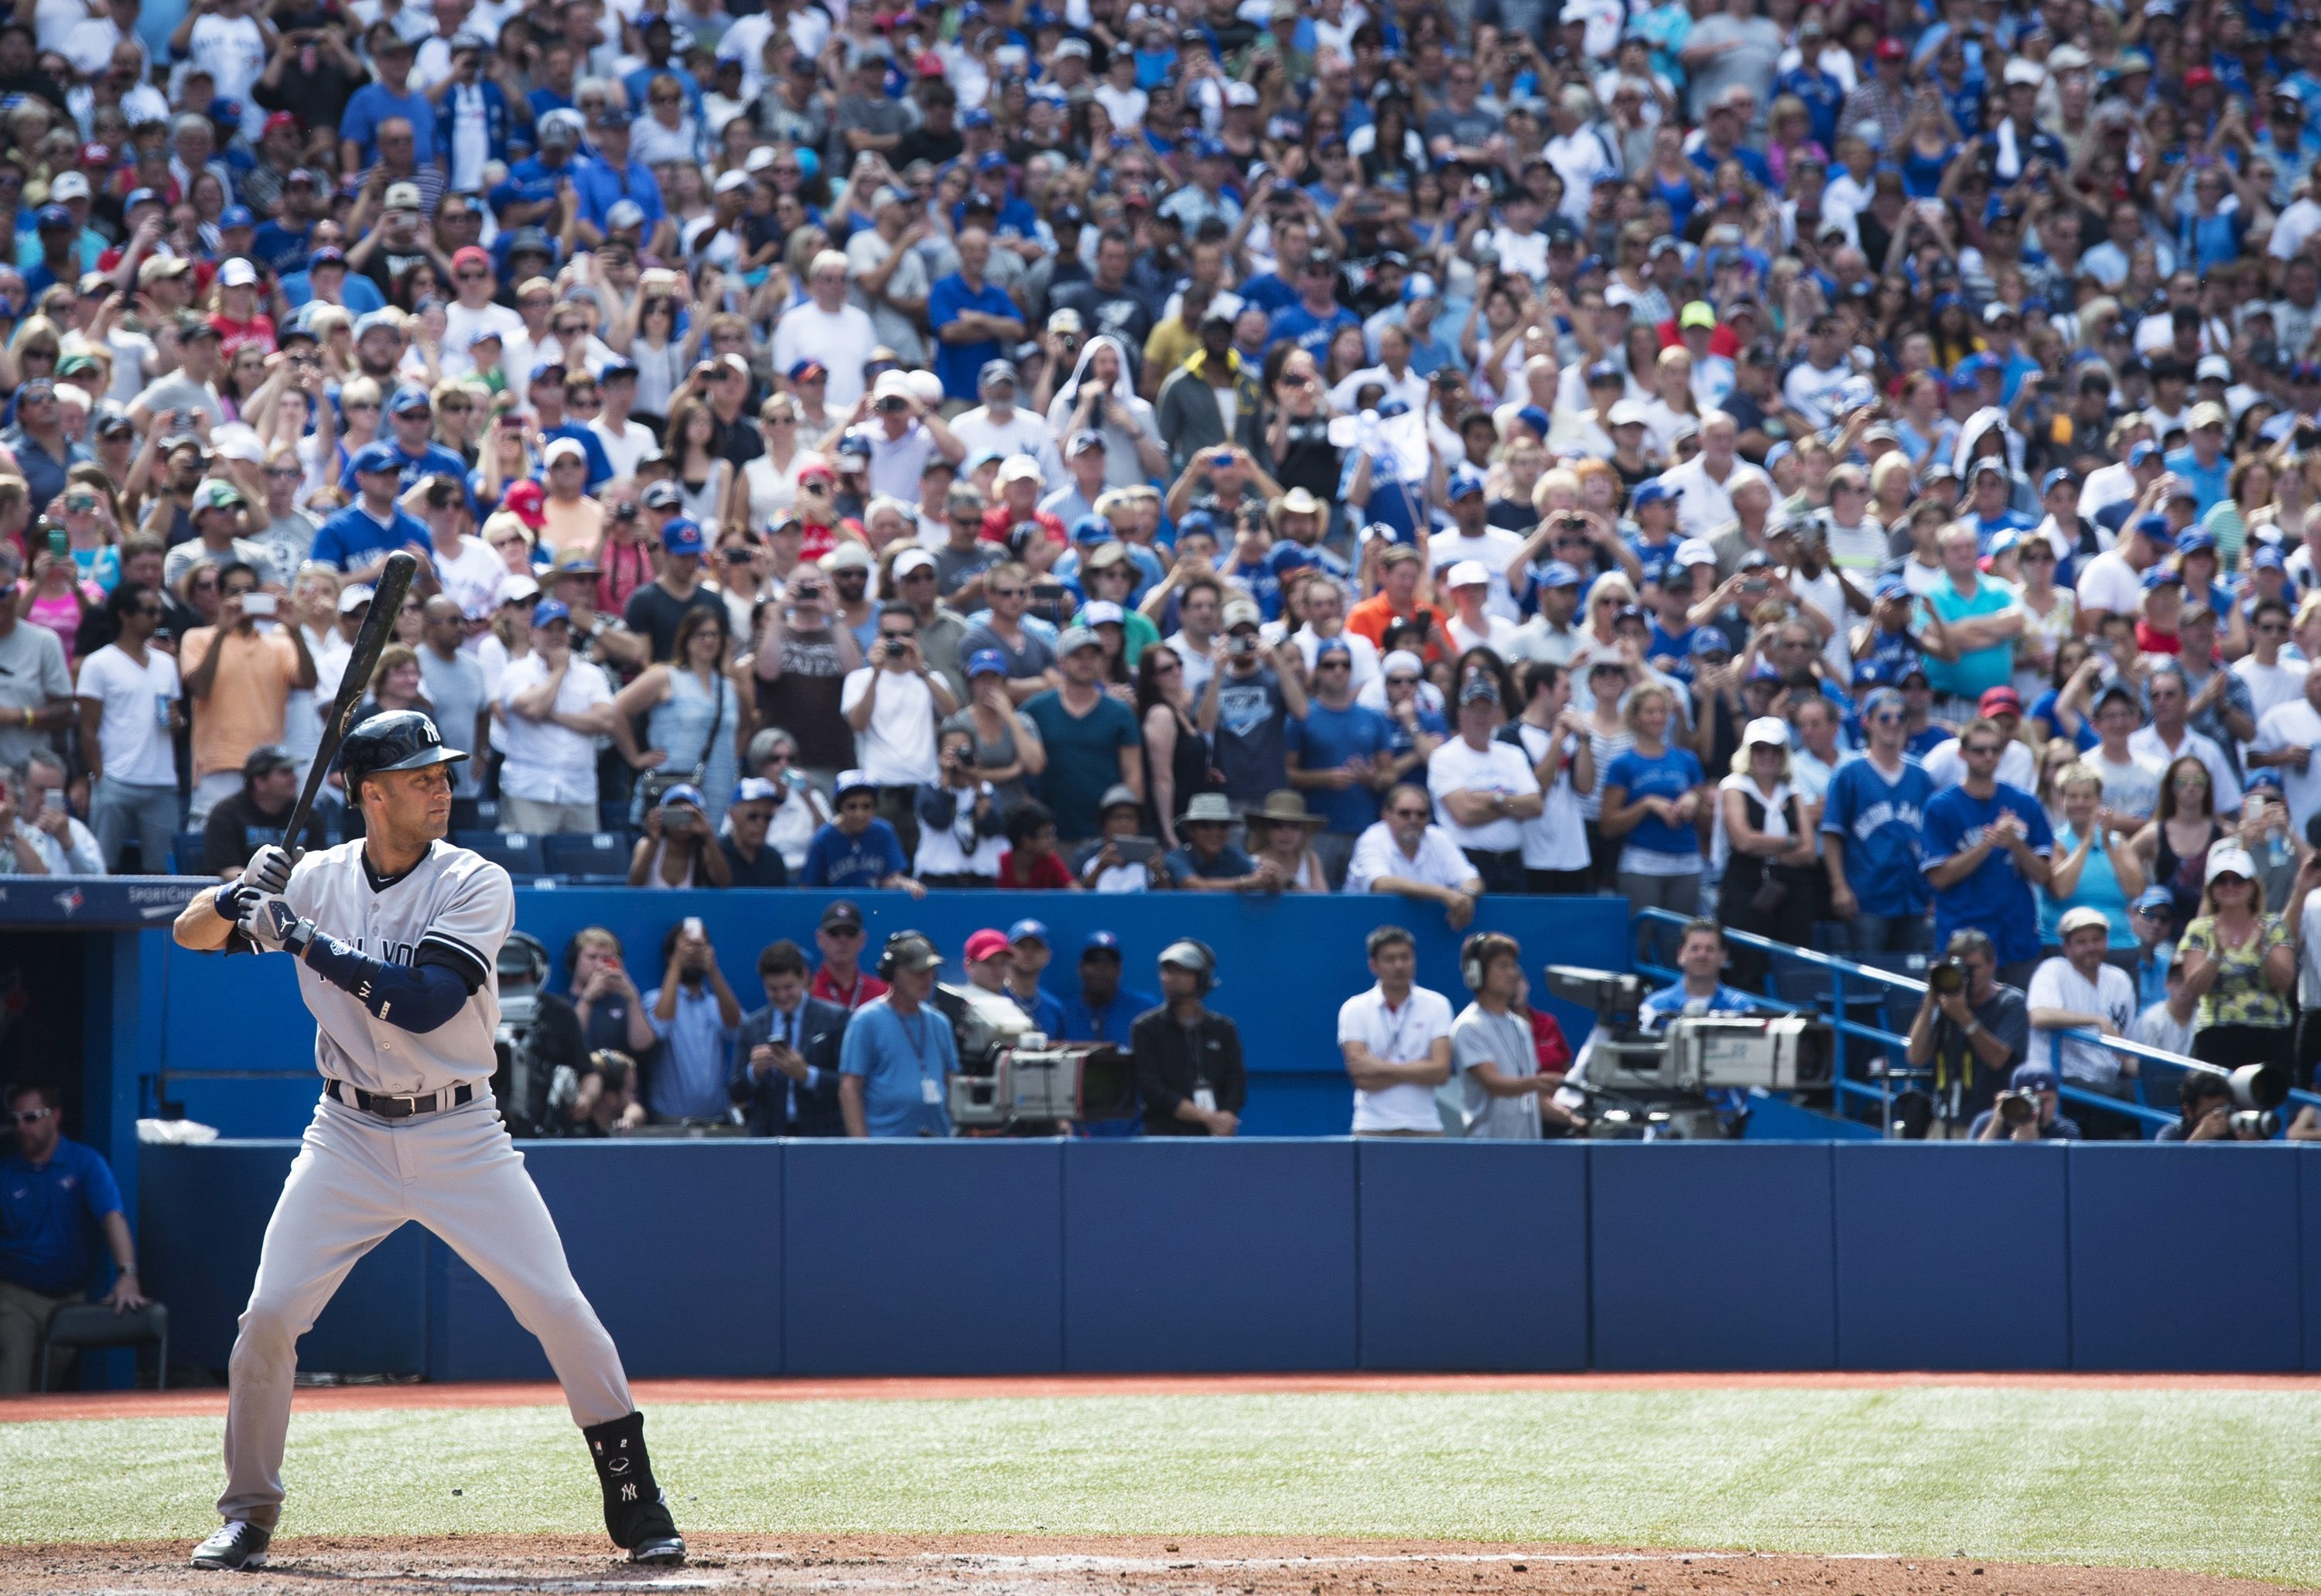 Fans stand in tribute as the Yankees' Derek Jeter takes his last Toronto at-bat against the Blue Jays in the ninth inning Sunday at the Rogers Centre.